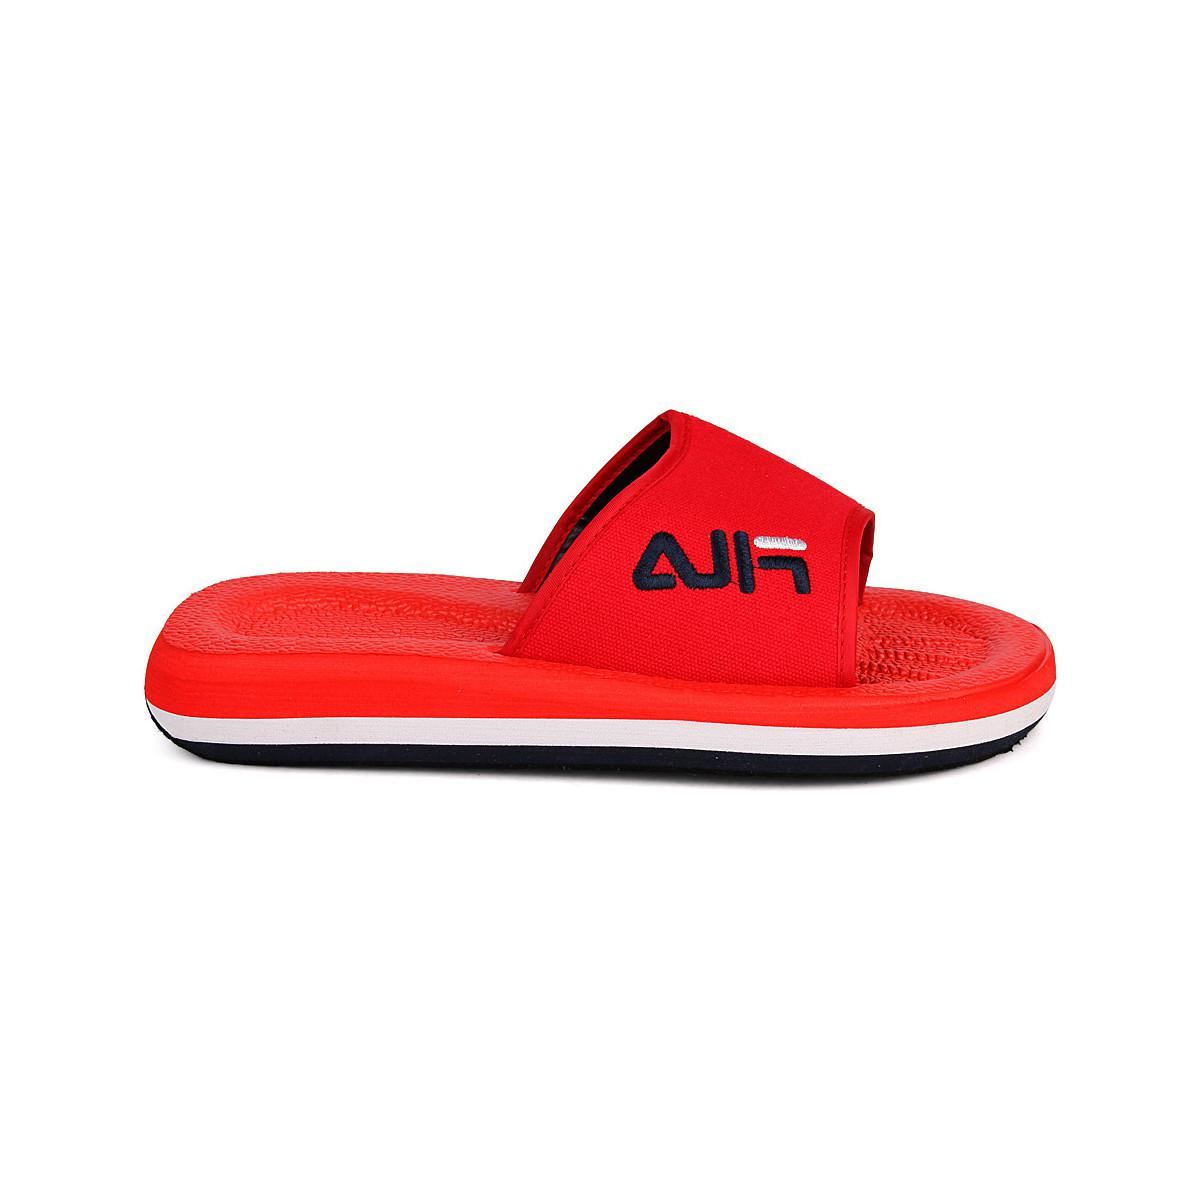 95ec1e77e5bb Fila Tomaia Men s Flip Flops   Sandals (shoes) In Red in Red for Men ...